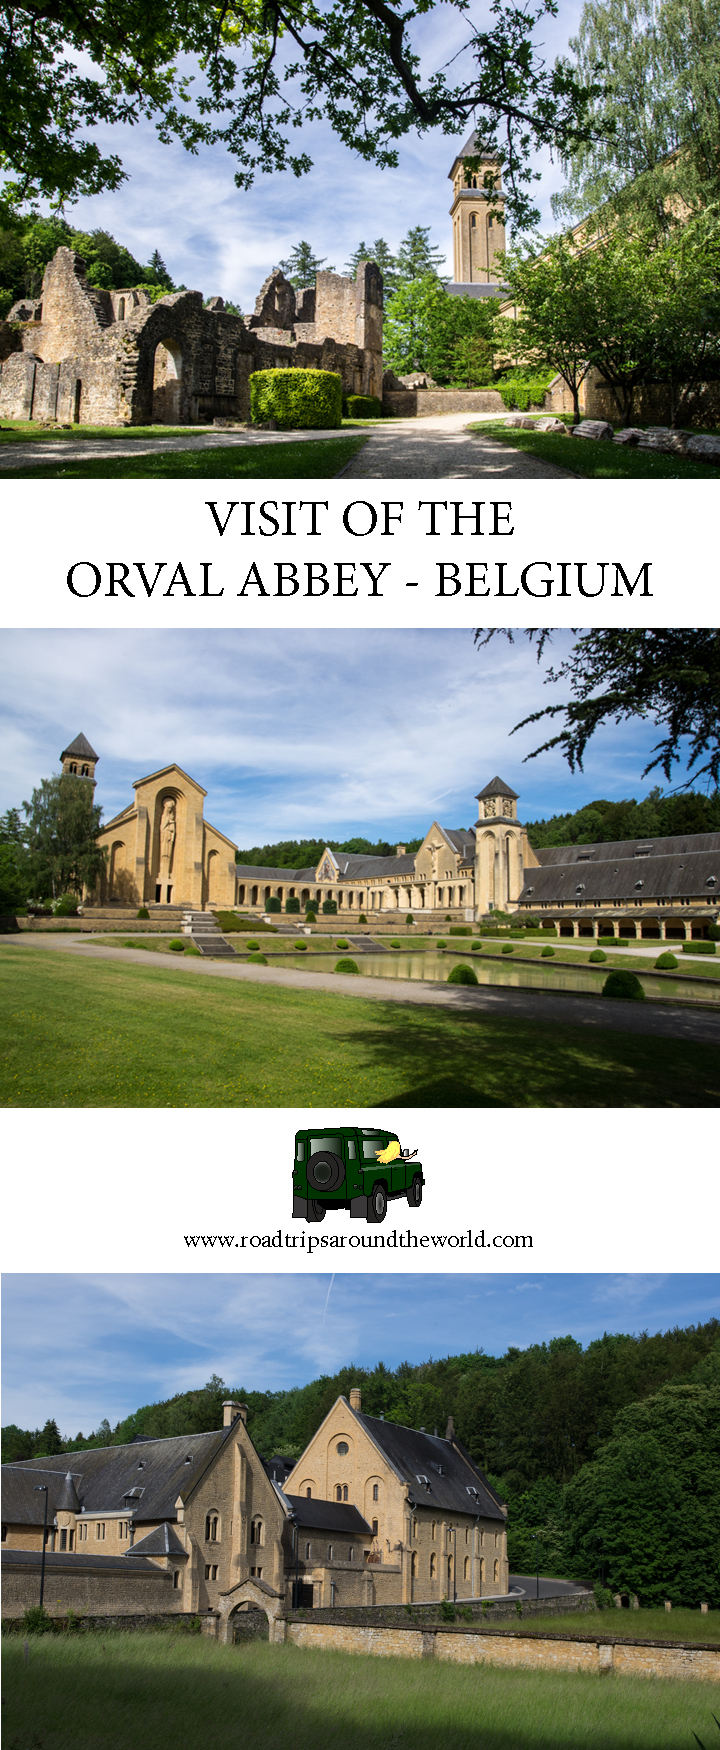 Visit of the Orval Abbey in Belgium - www.roadtripsaroundtheworld.com